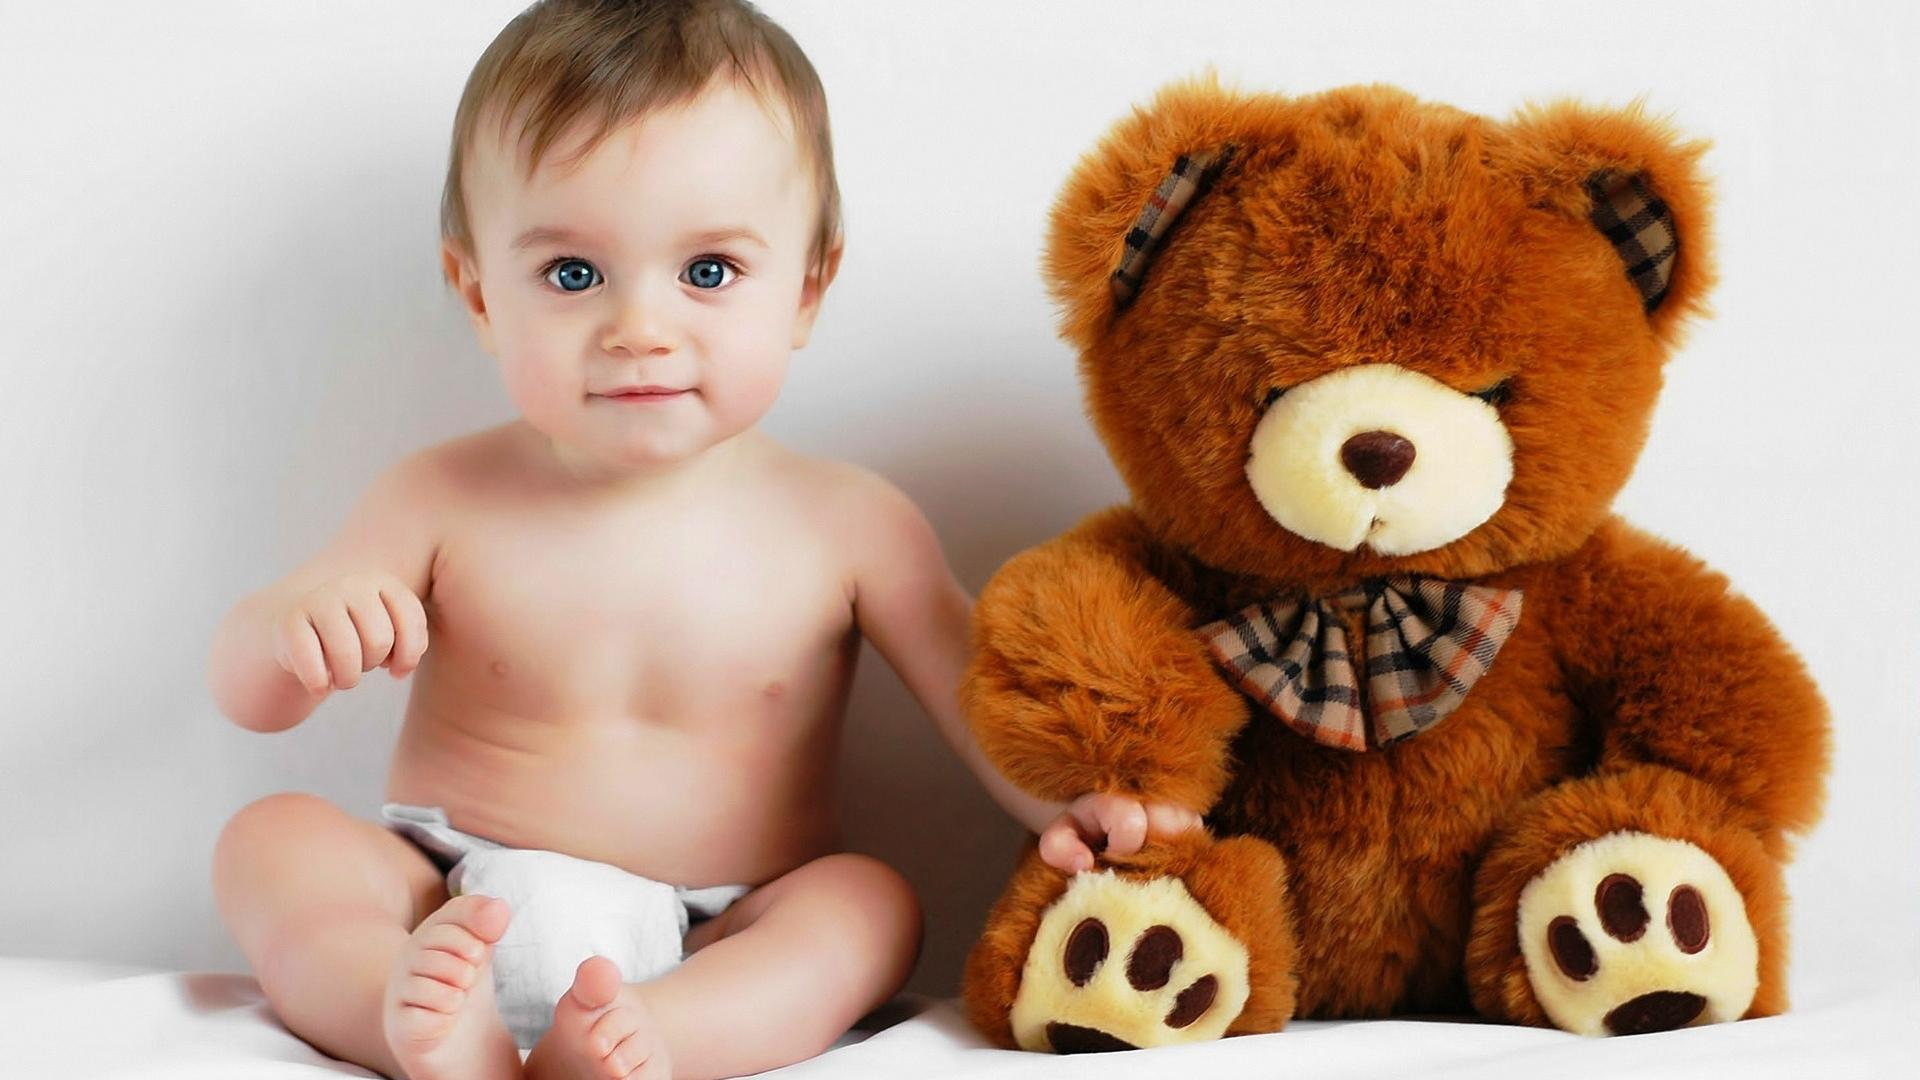 Cute Baby Images Hd Wallpaper 3d Quality Entertainment